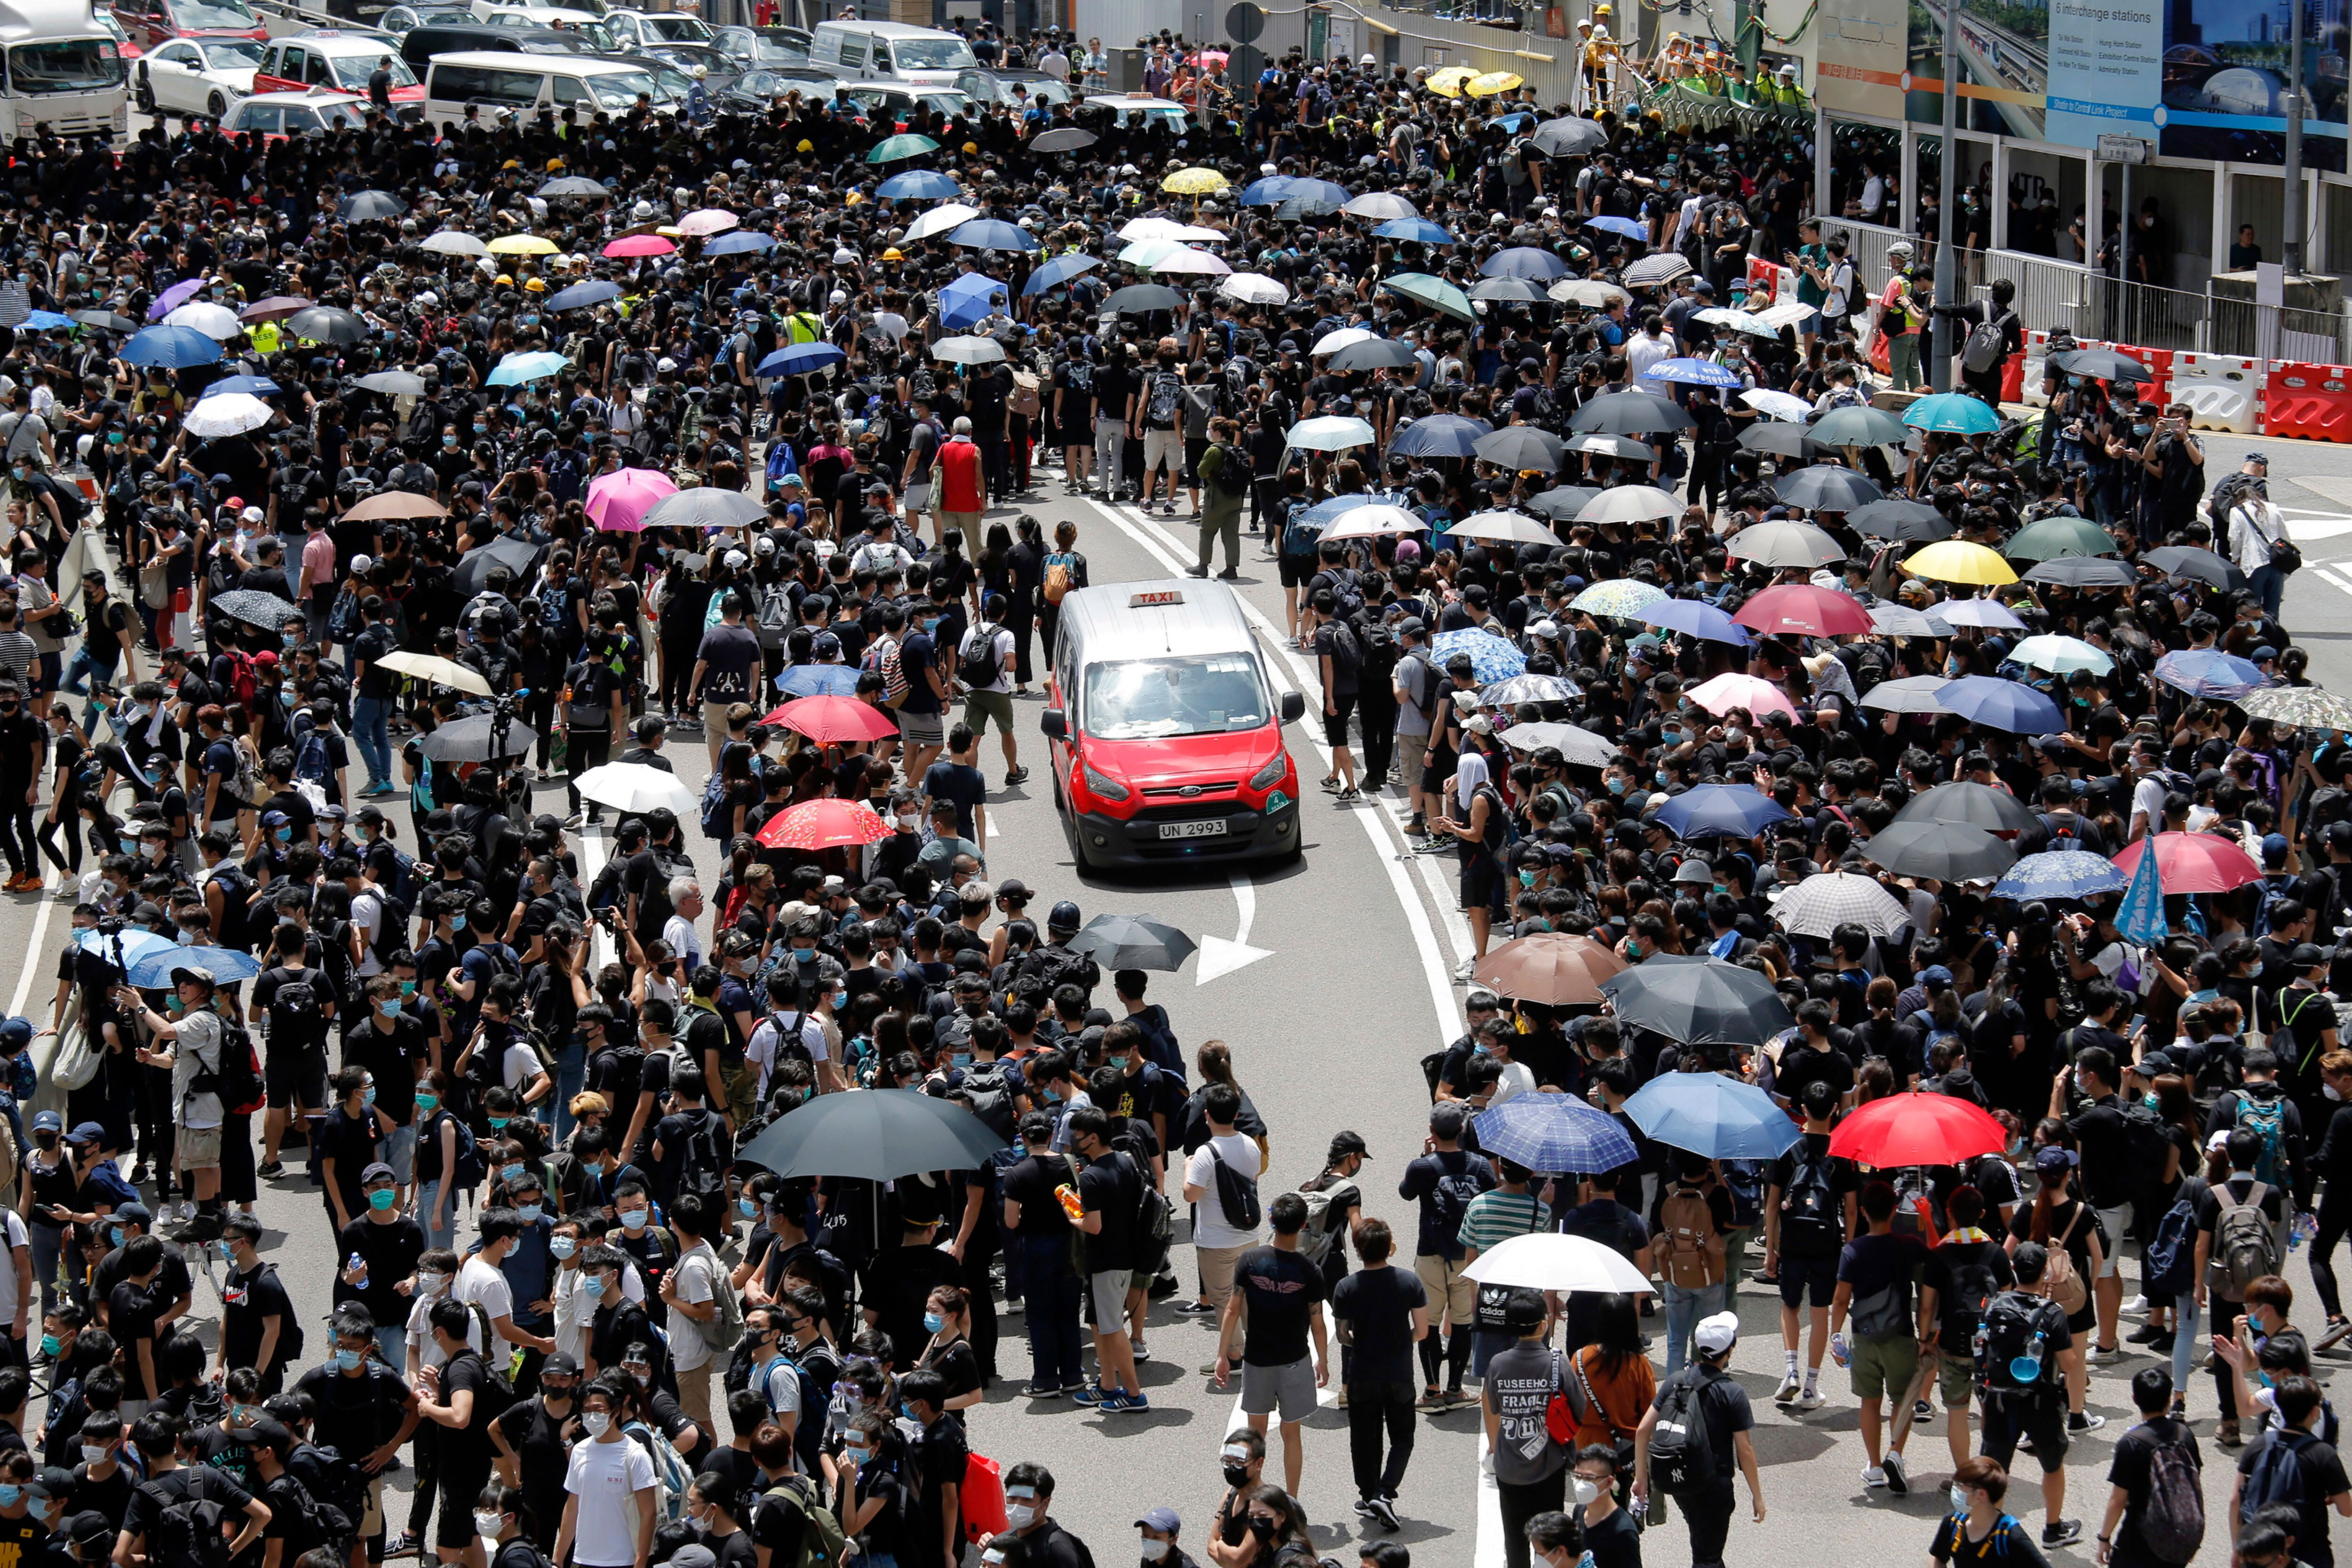 Thousands Of Protesters Return To The Streets Of Hong Kong To Denounce Extradition Bill